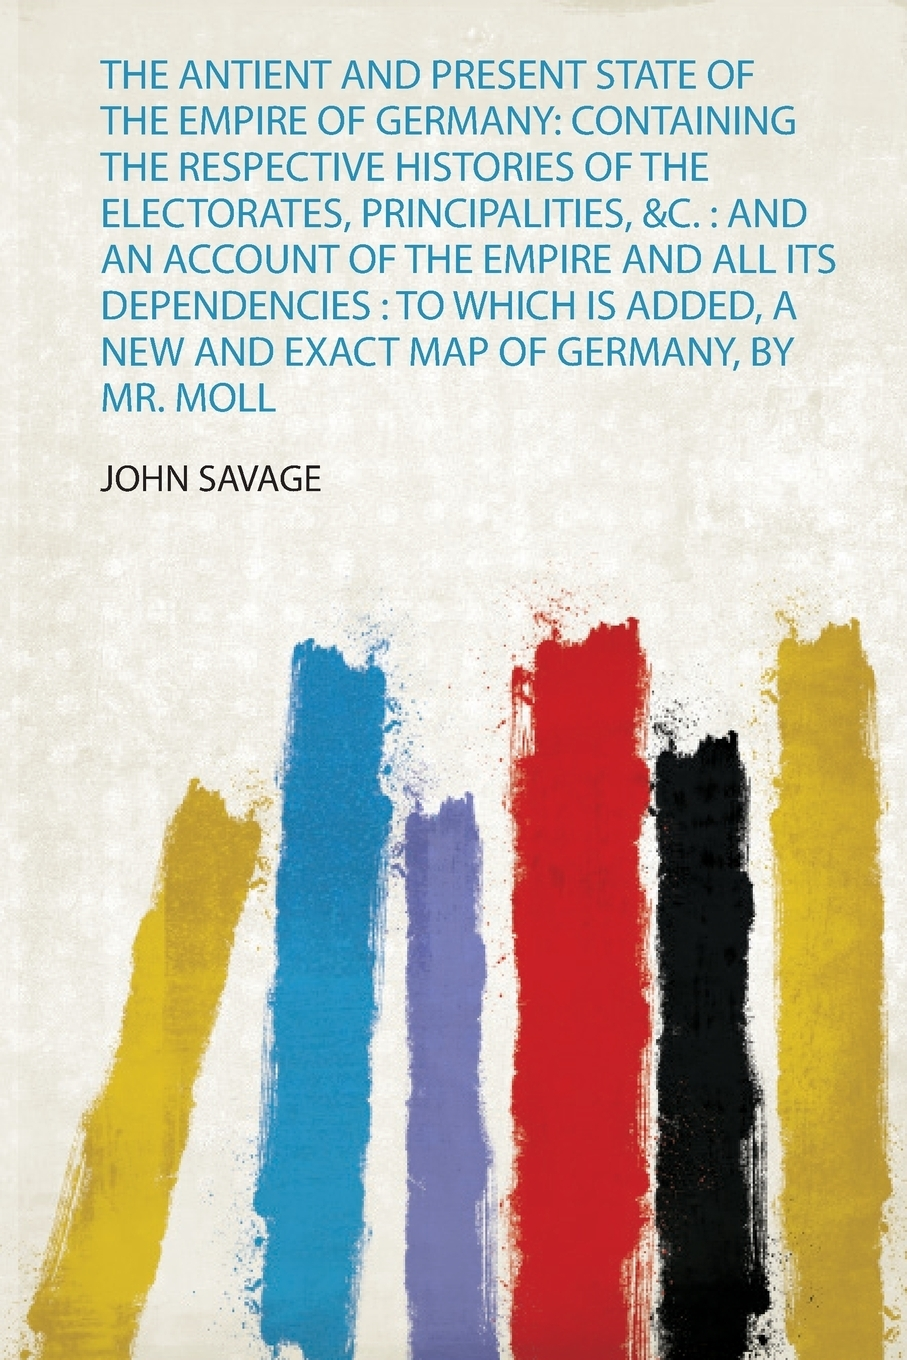 The Antient and Present State of the Empire of Germany. Containing the Respective Histories of the Electorates, Principalities, &C. : and an Account of the Empire and All Its Dependencies : to Which Is Added, a New and Exact Map of Germany, by Mr....